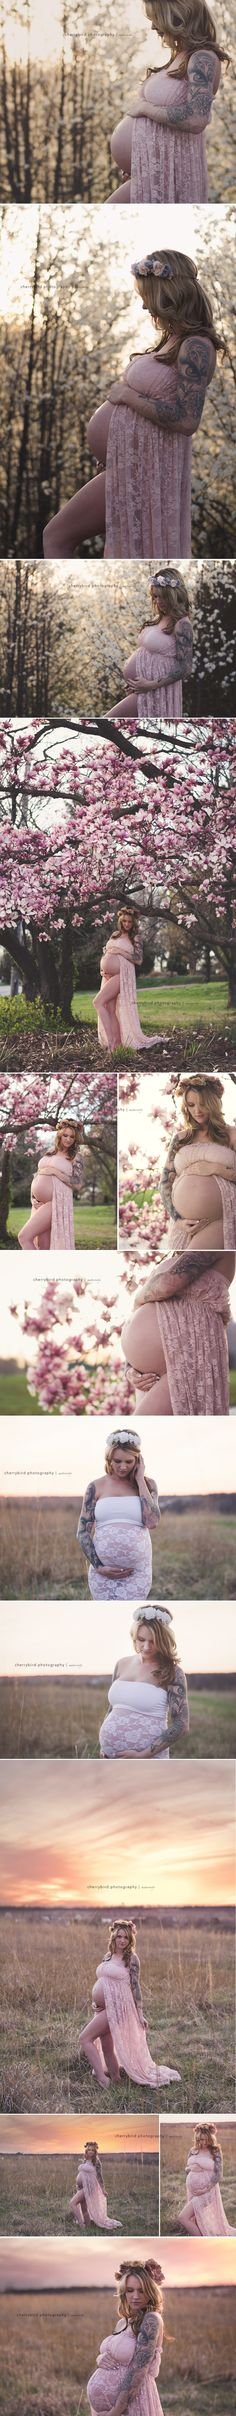 LAKE OF THE OZARKS MATERNITY PHOTOGRAPHY Pink maternity gown lace flowers outdoors